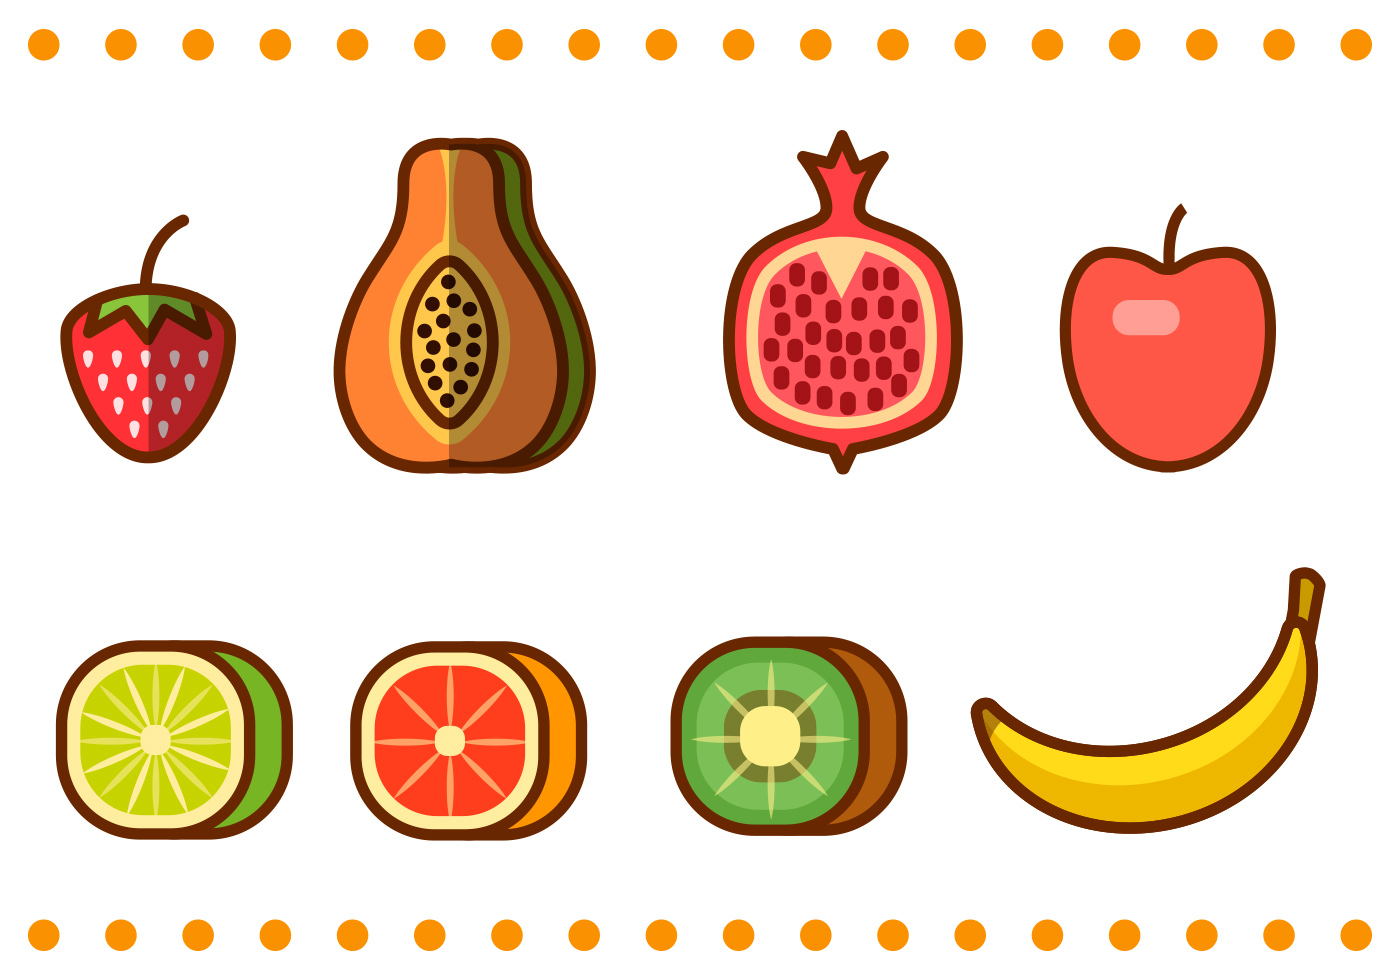 Beading And Rhinestones in addition Stock Illustration Coil Tattoo Machine Icon Outline Style Isolated Vector Illustration Image91906857 likewise Running Stitch furthermore 104498 Fruit Icons in addition North Arrow. on needle outline